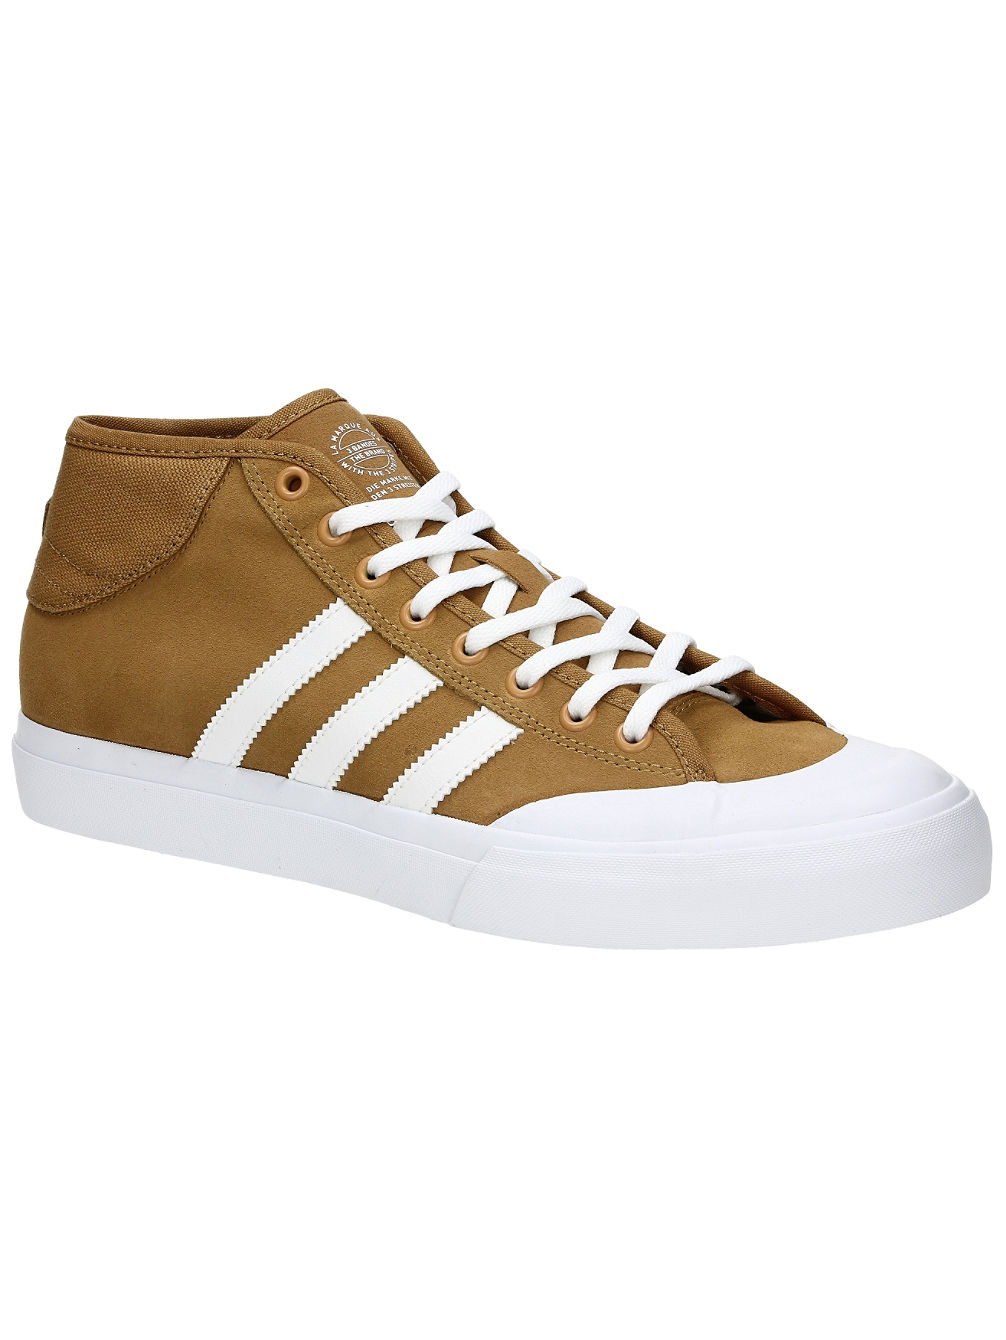 Matchcourt Mid ADV Skate Shoes